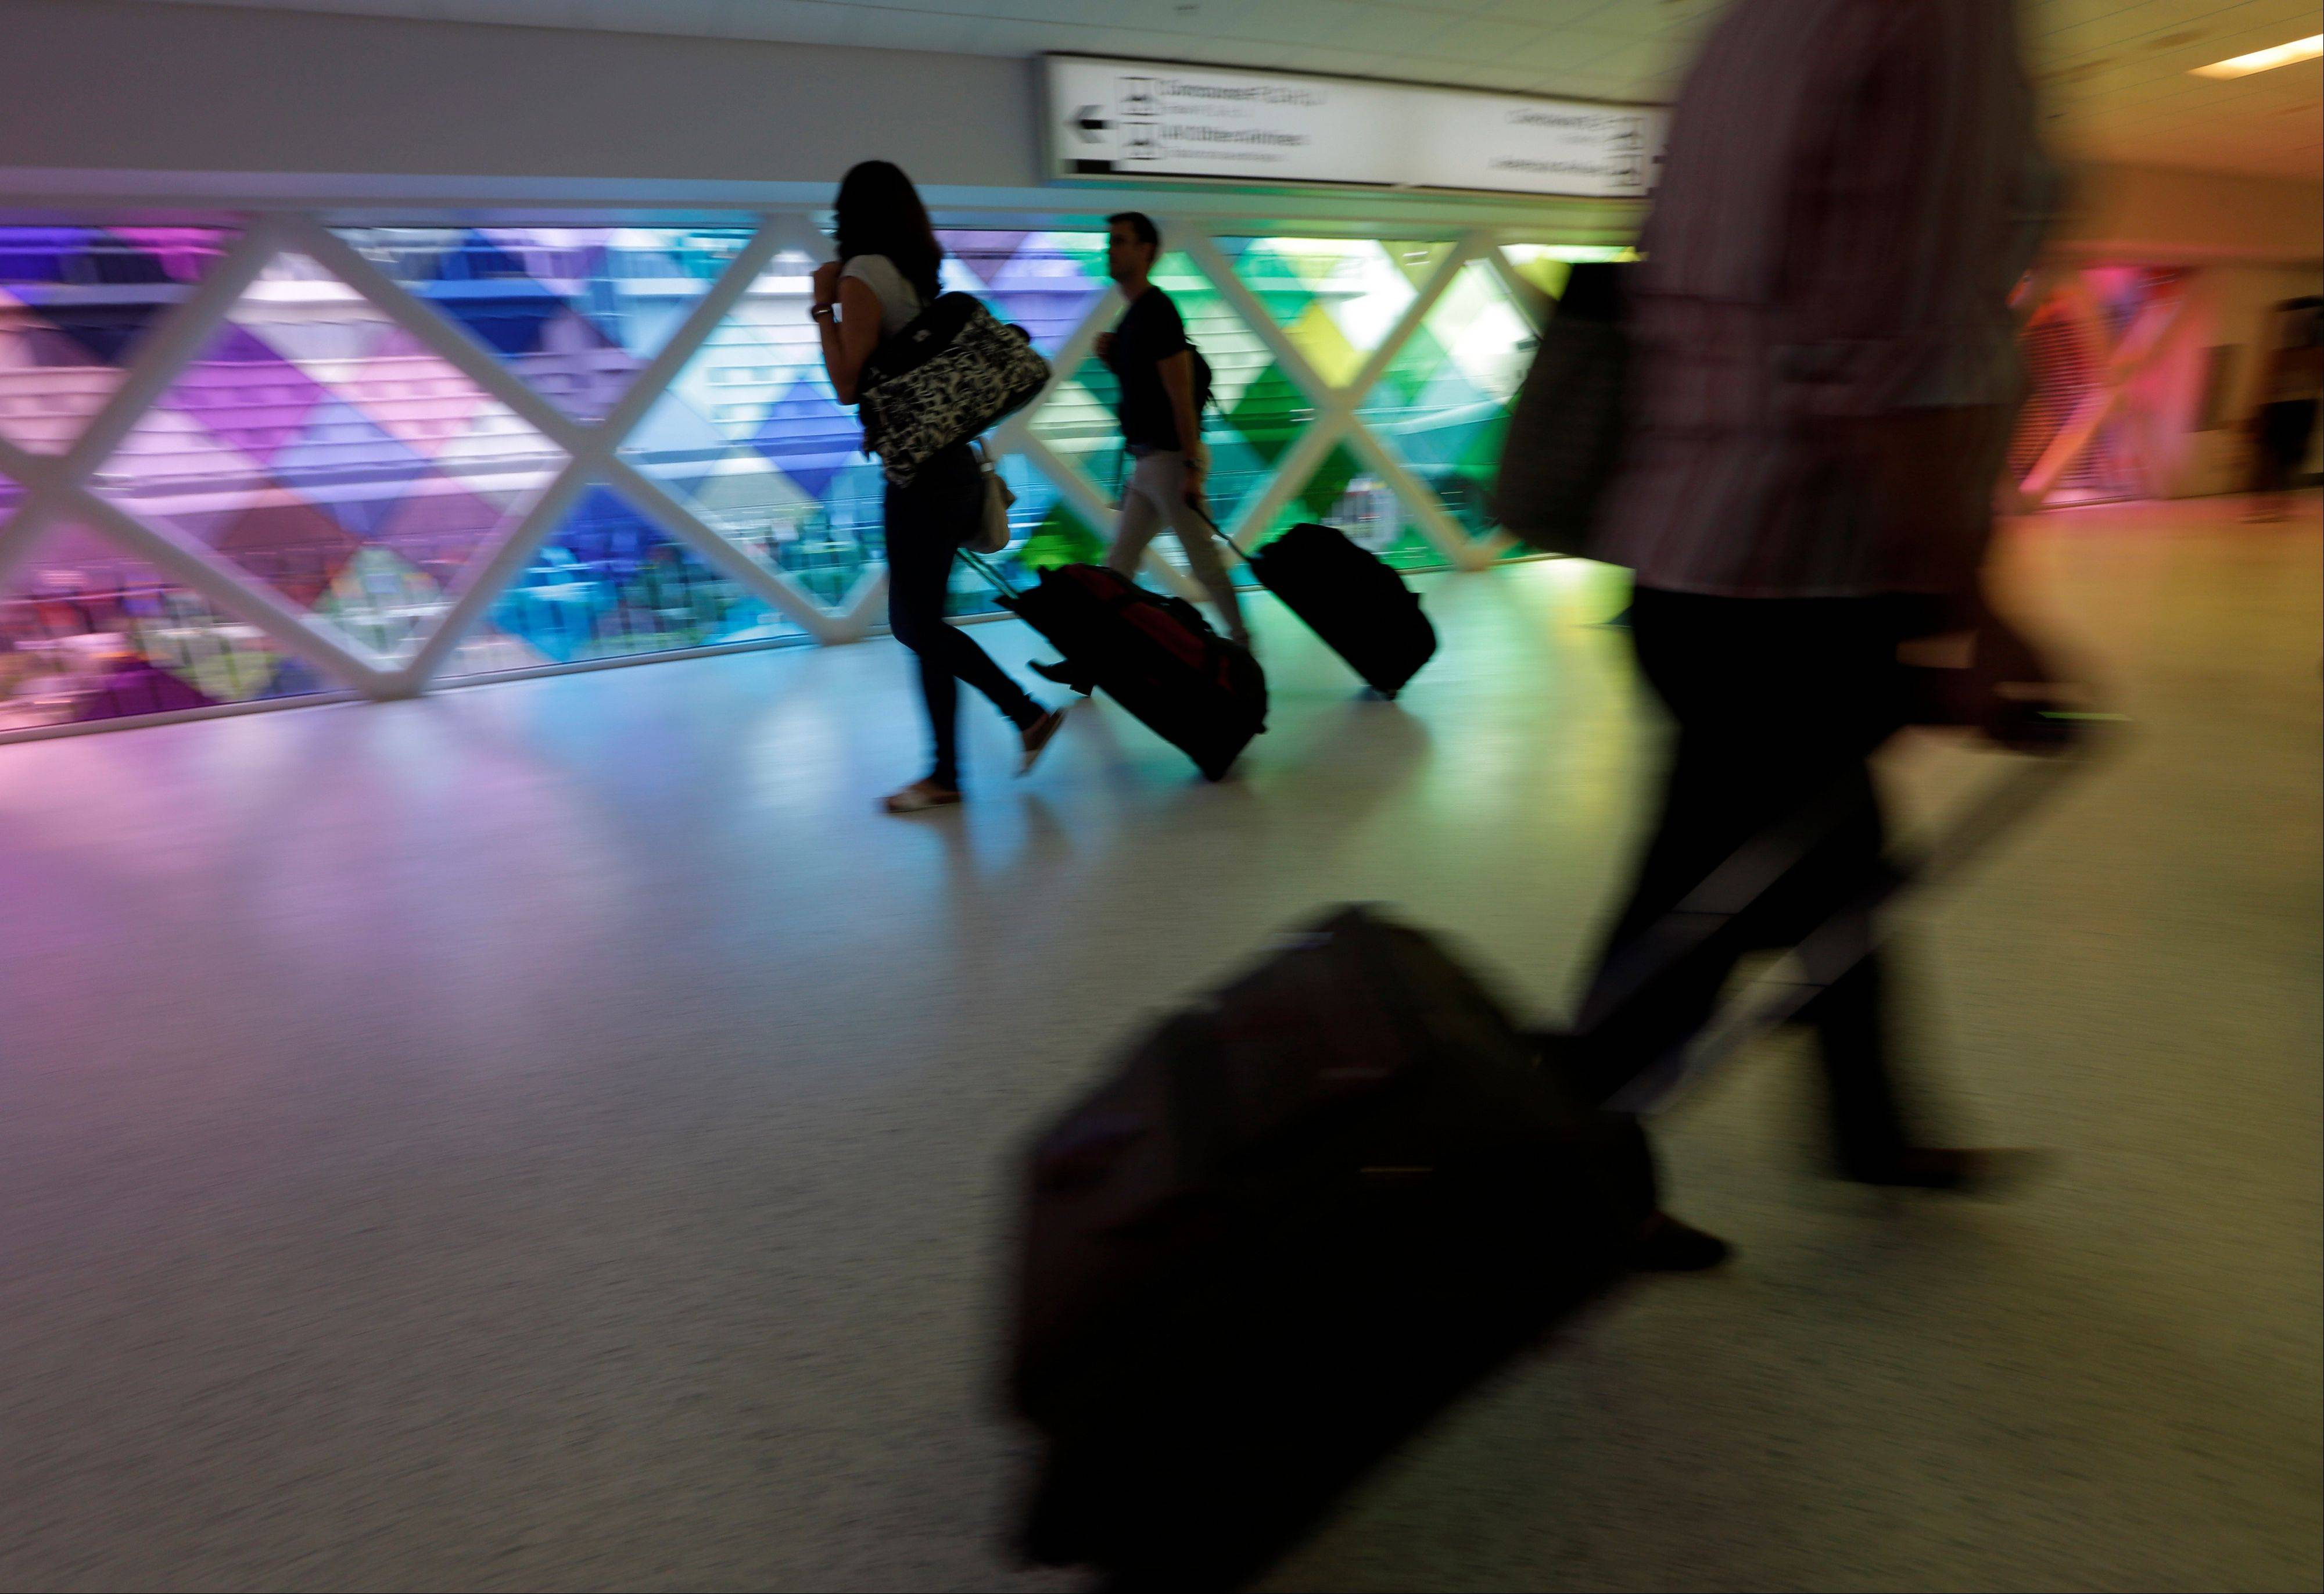 Passengers travel through an airport in Miami. Private researchers, who have analyzed federal data on airline performance, say in a report that consumer complaints to the Department of Transportation surged by one-fifth last year even though other measures such as on-time arrivals and mishandled baggage show airlines are doing a better job.